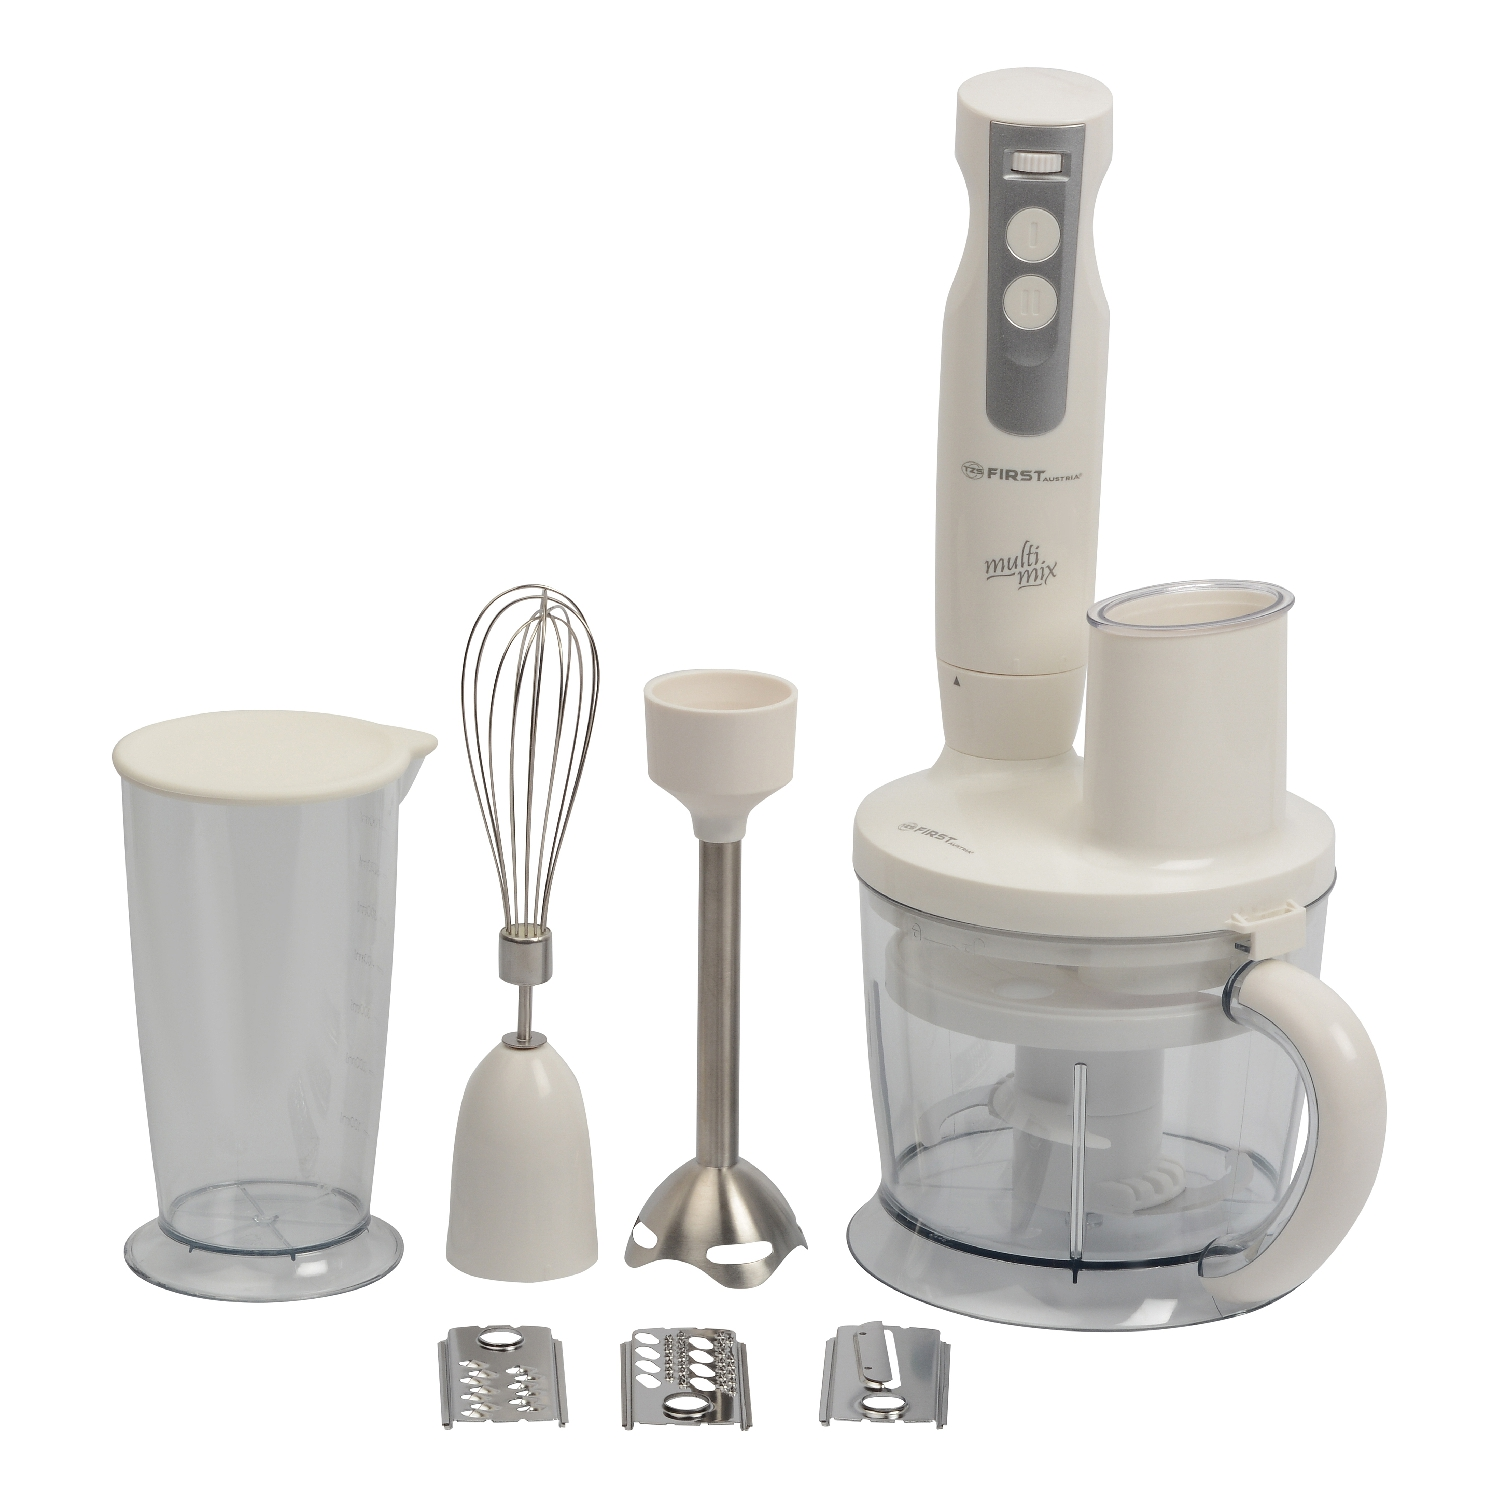 Immersion blender FIRST FA-5273-1 White/silver kingcamp 4291 airporter